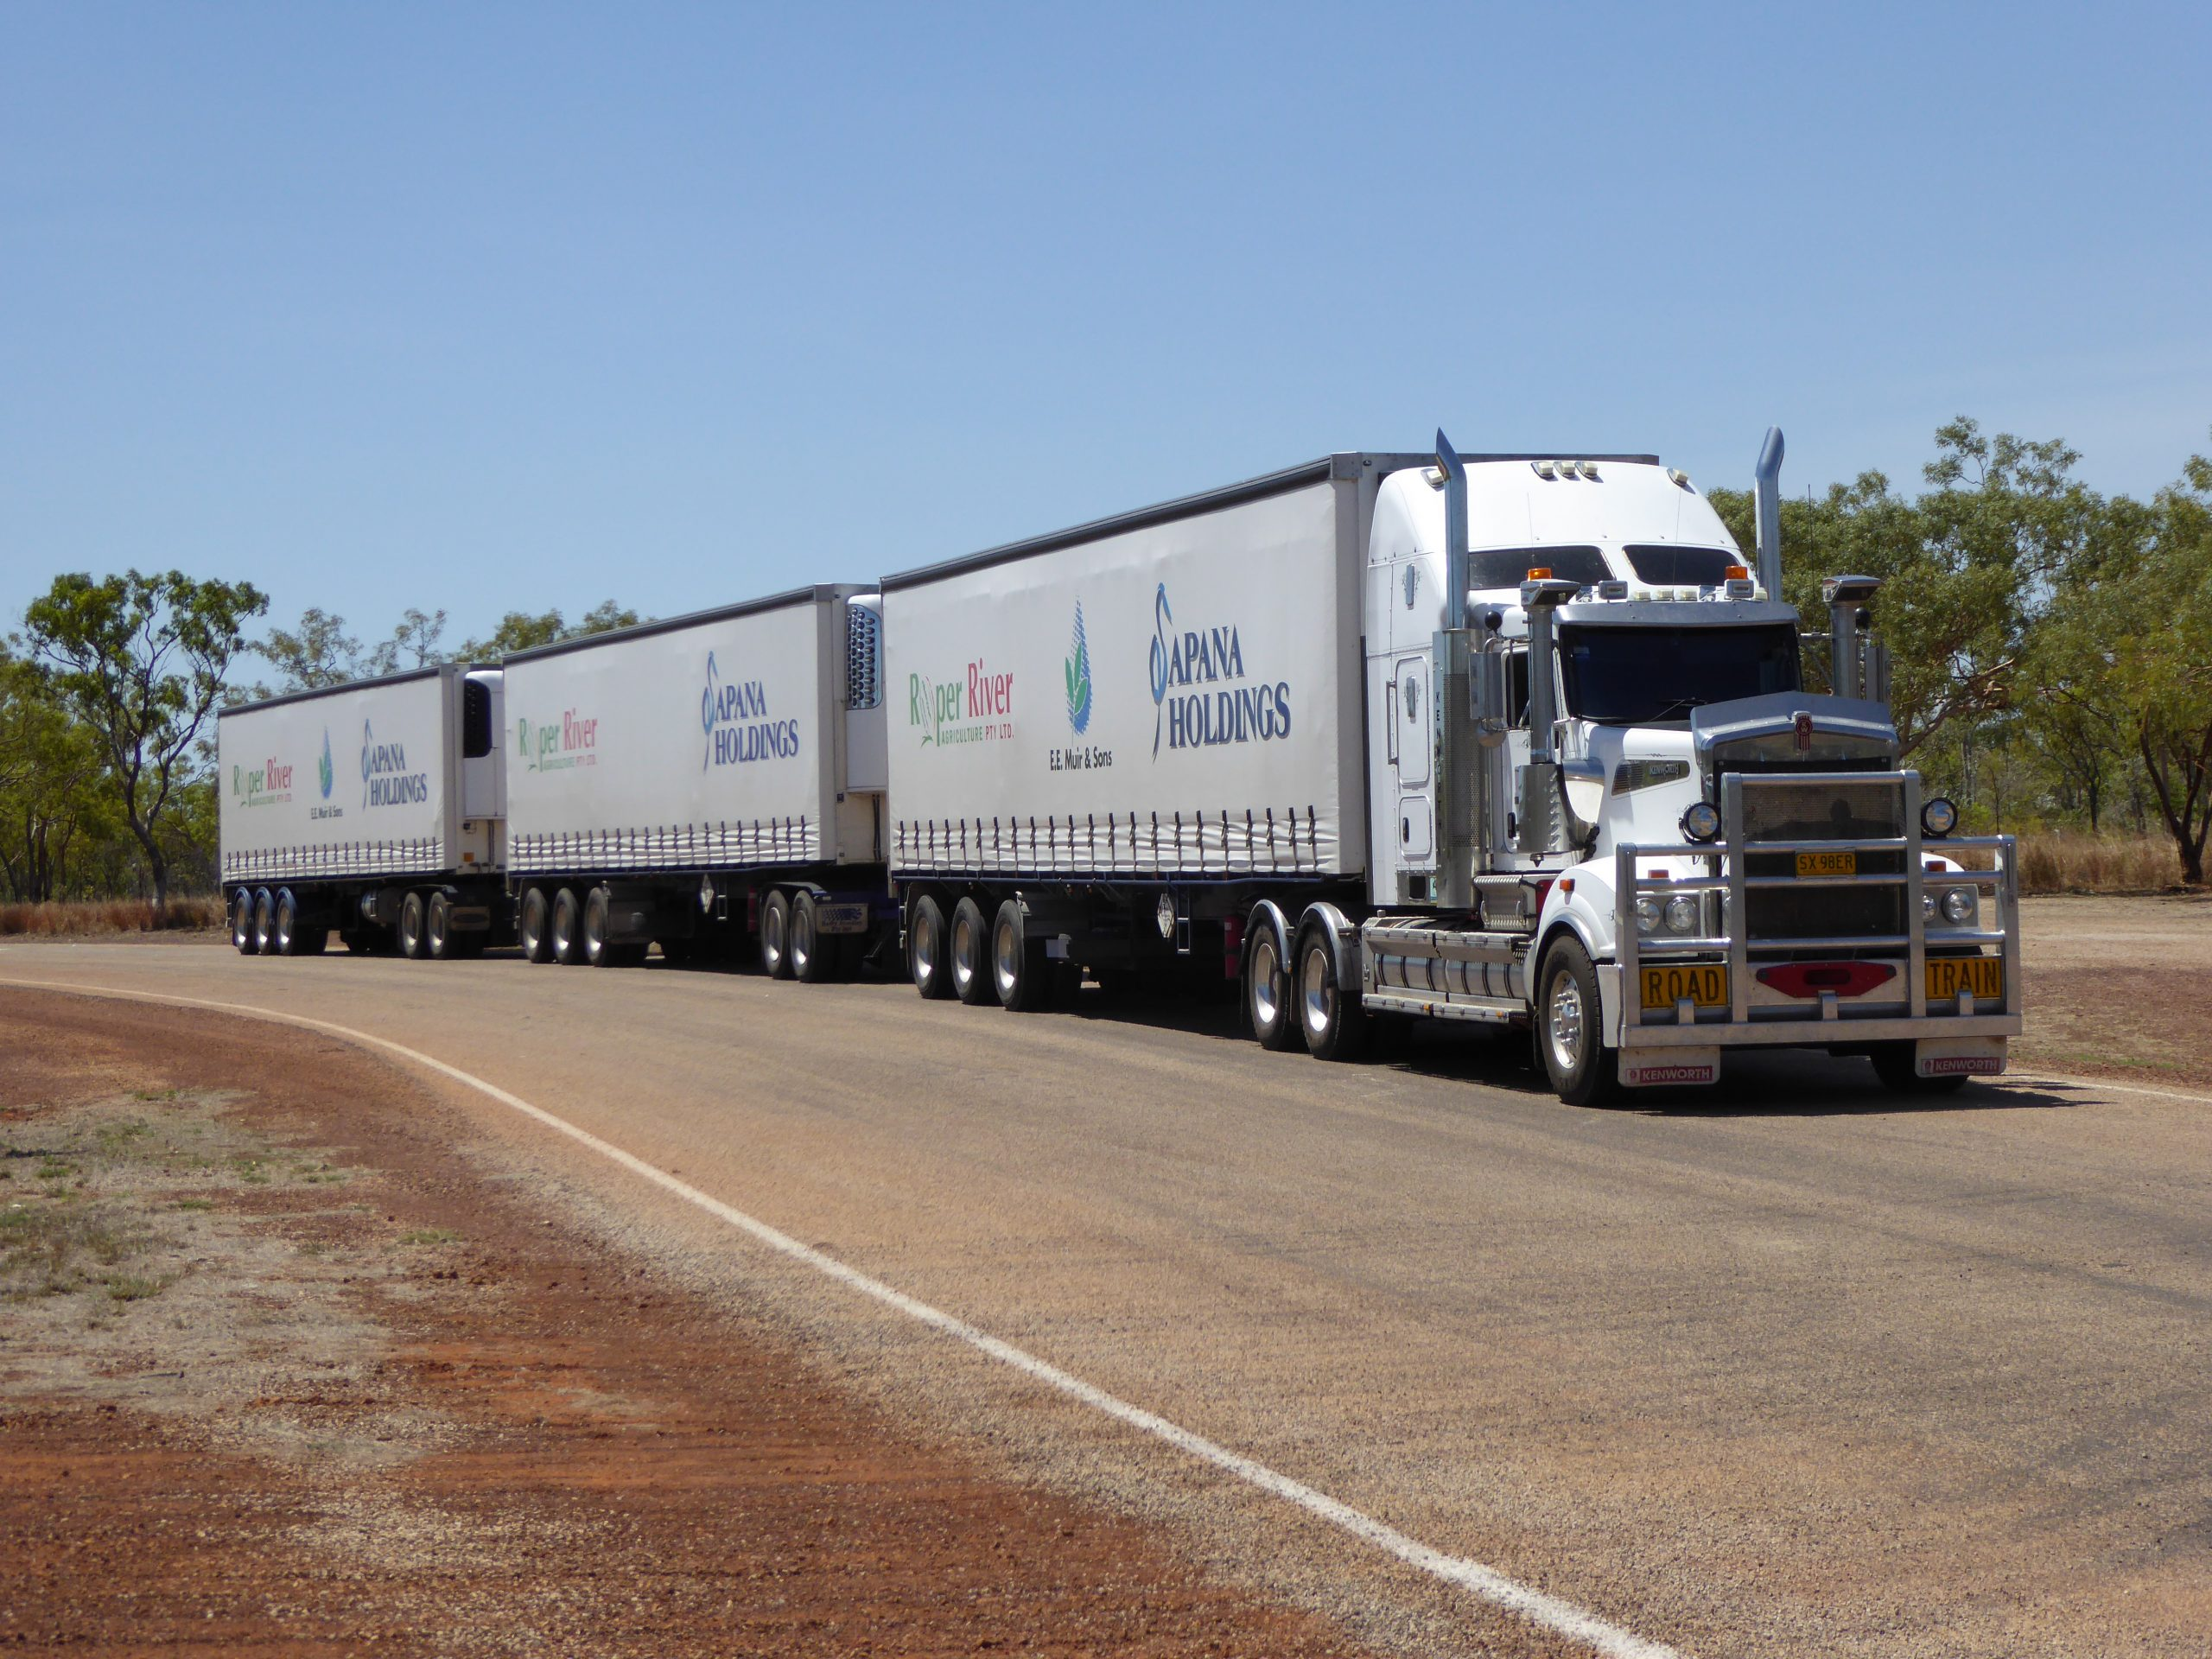 Radreise Australien 2016 - Stuart Highway - Road Train